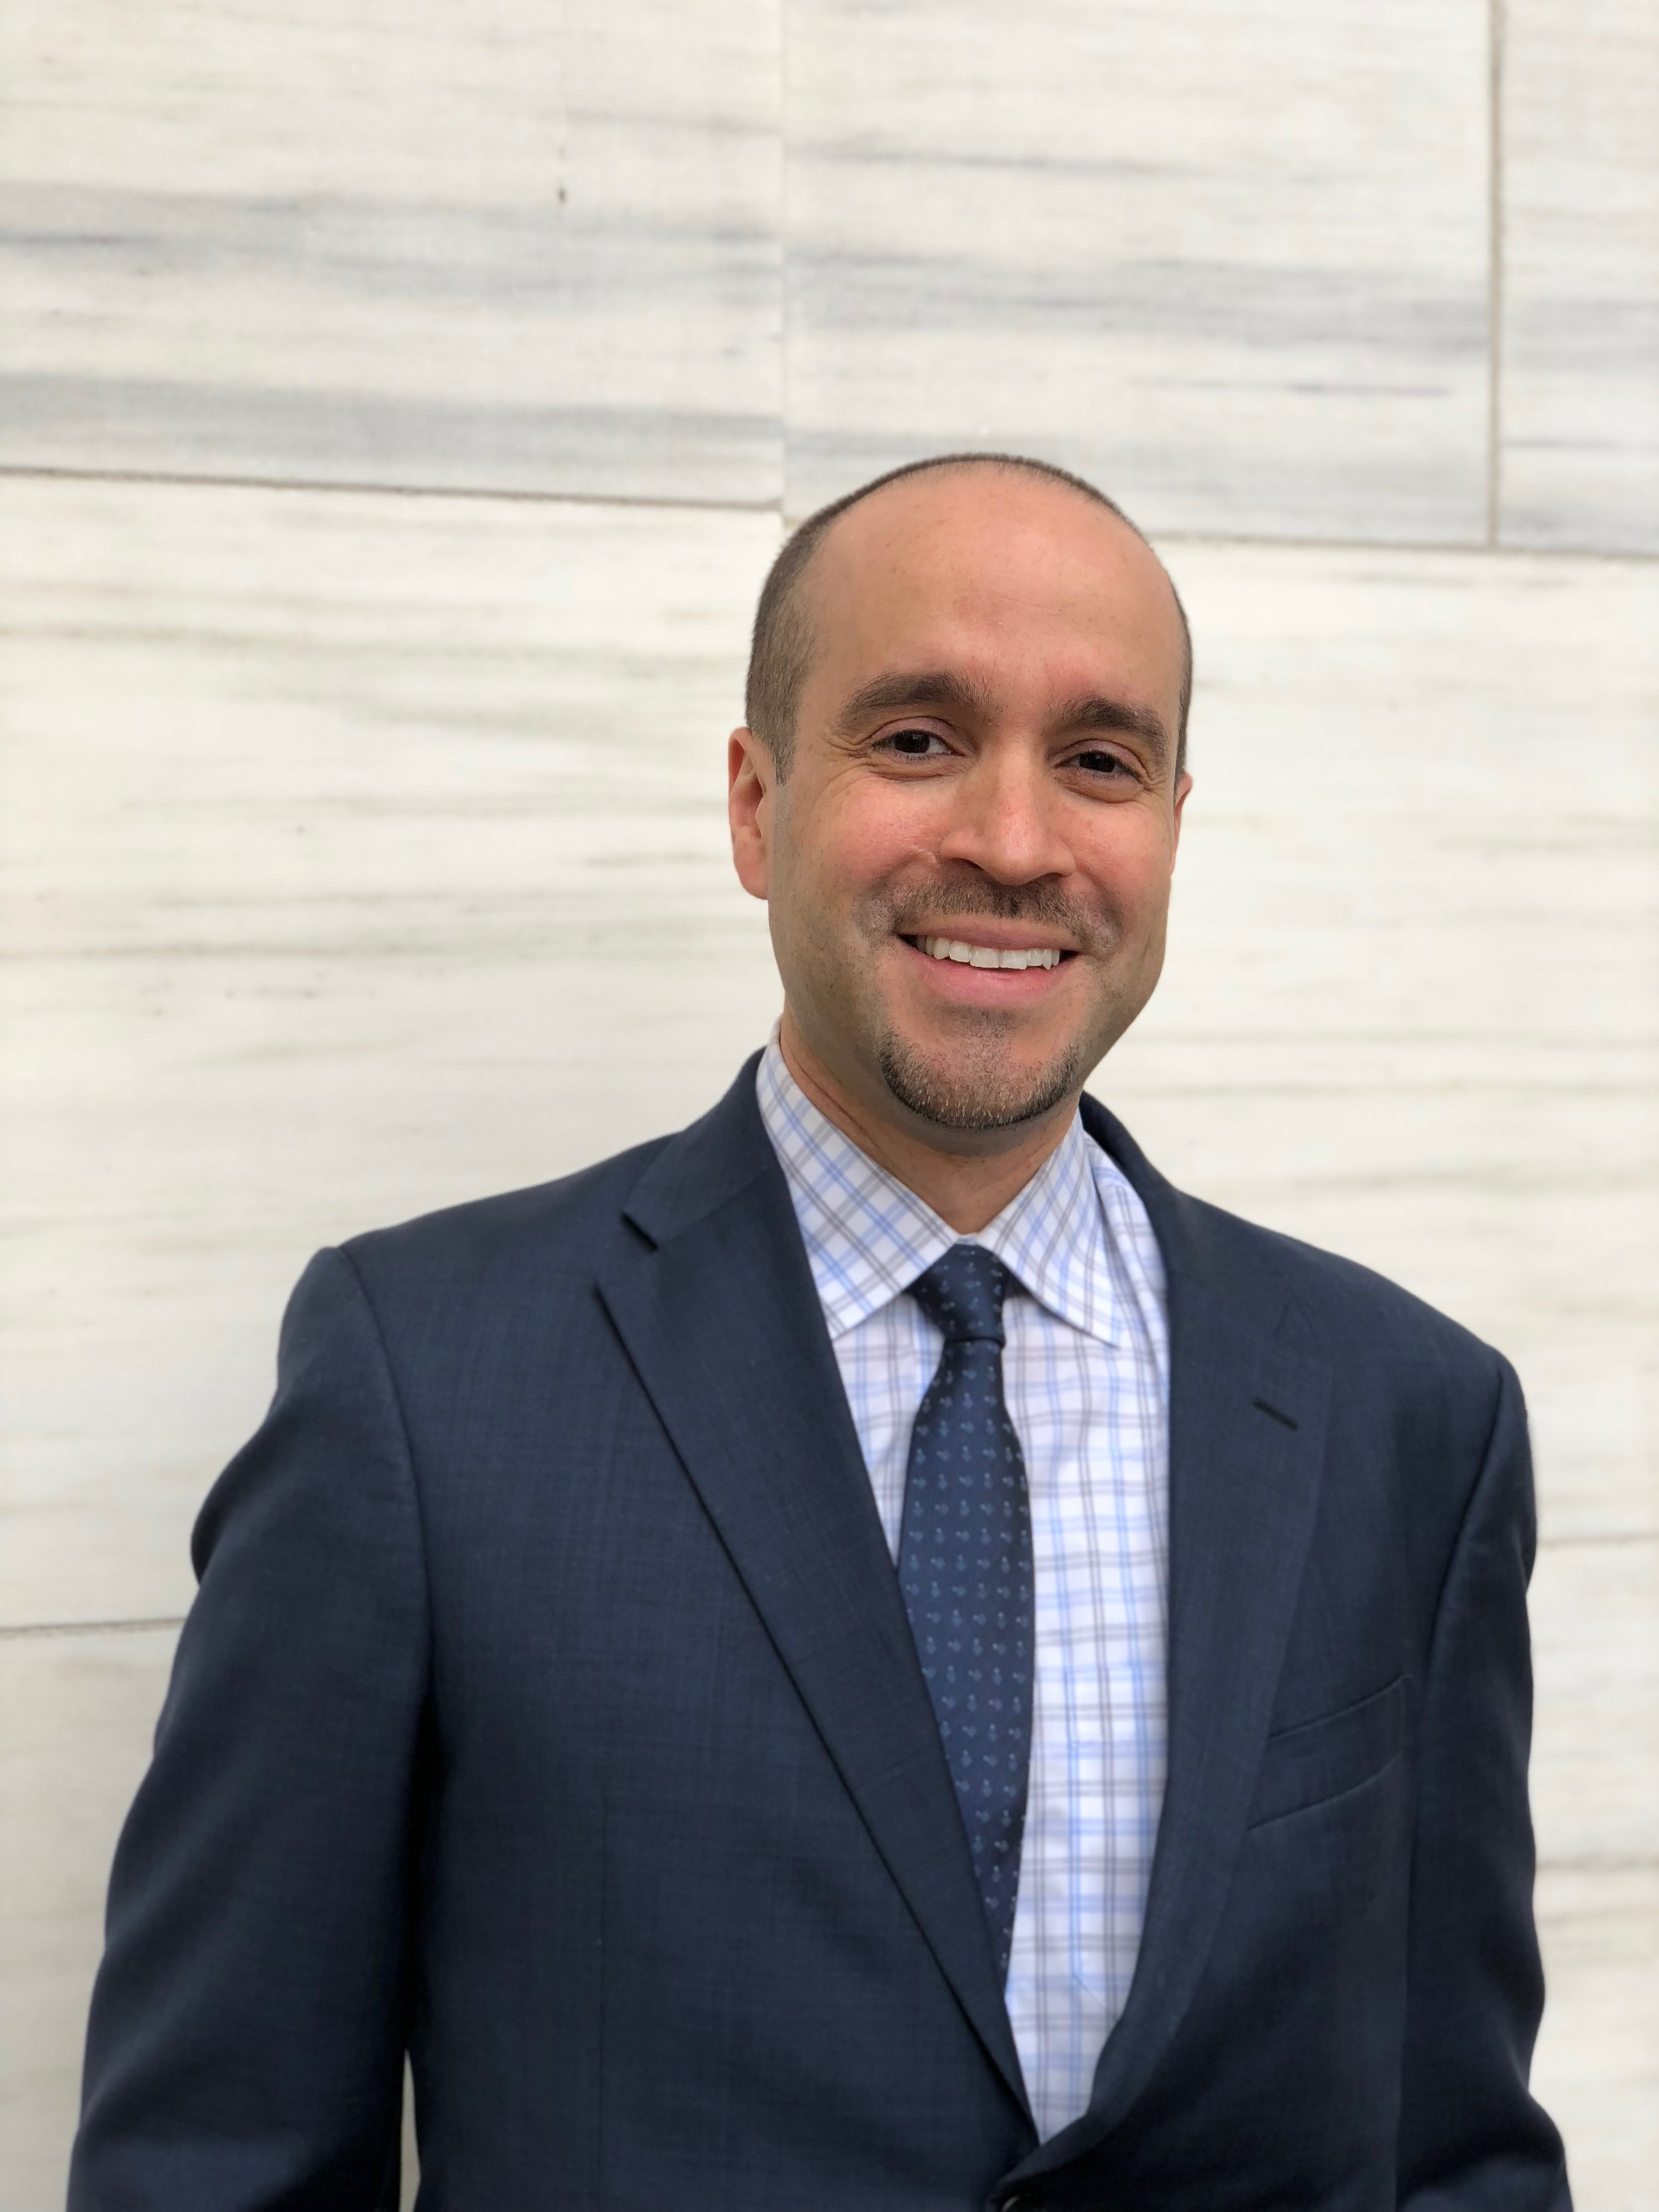 Jesus Diaz    Secretary   Jesus Diaz leads University Relations across New York State for Examity. Mr. Diaz has spent the past 10 years managing higher education sales teams across publicly traded and privately held corporations. Prior to leading education teams, Mr. Diaz founded Latino University and Latino High School, two BPA-audited and highly regarded publications, geared respectively towards improving the lives of students in high density Latino schools. Mr. Diaz has served on the boards of AsianMBA, Career Outcomes Matter, and the Association for Talent Development's NYC Chapter, has led technology courses for adults at Soundview Community in Action (Bronx, NY), and over the past four years has continued to mentor high school students in the Bronx. Mr. Diaz holds a BA from New York University, and an MBA from Columbia Business School.